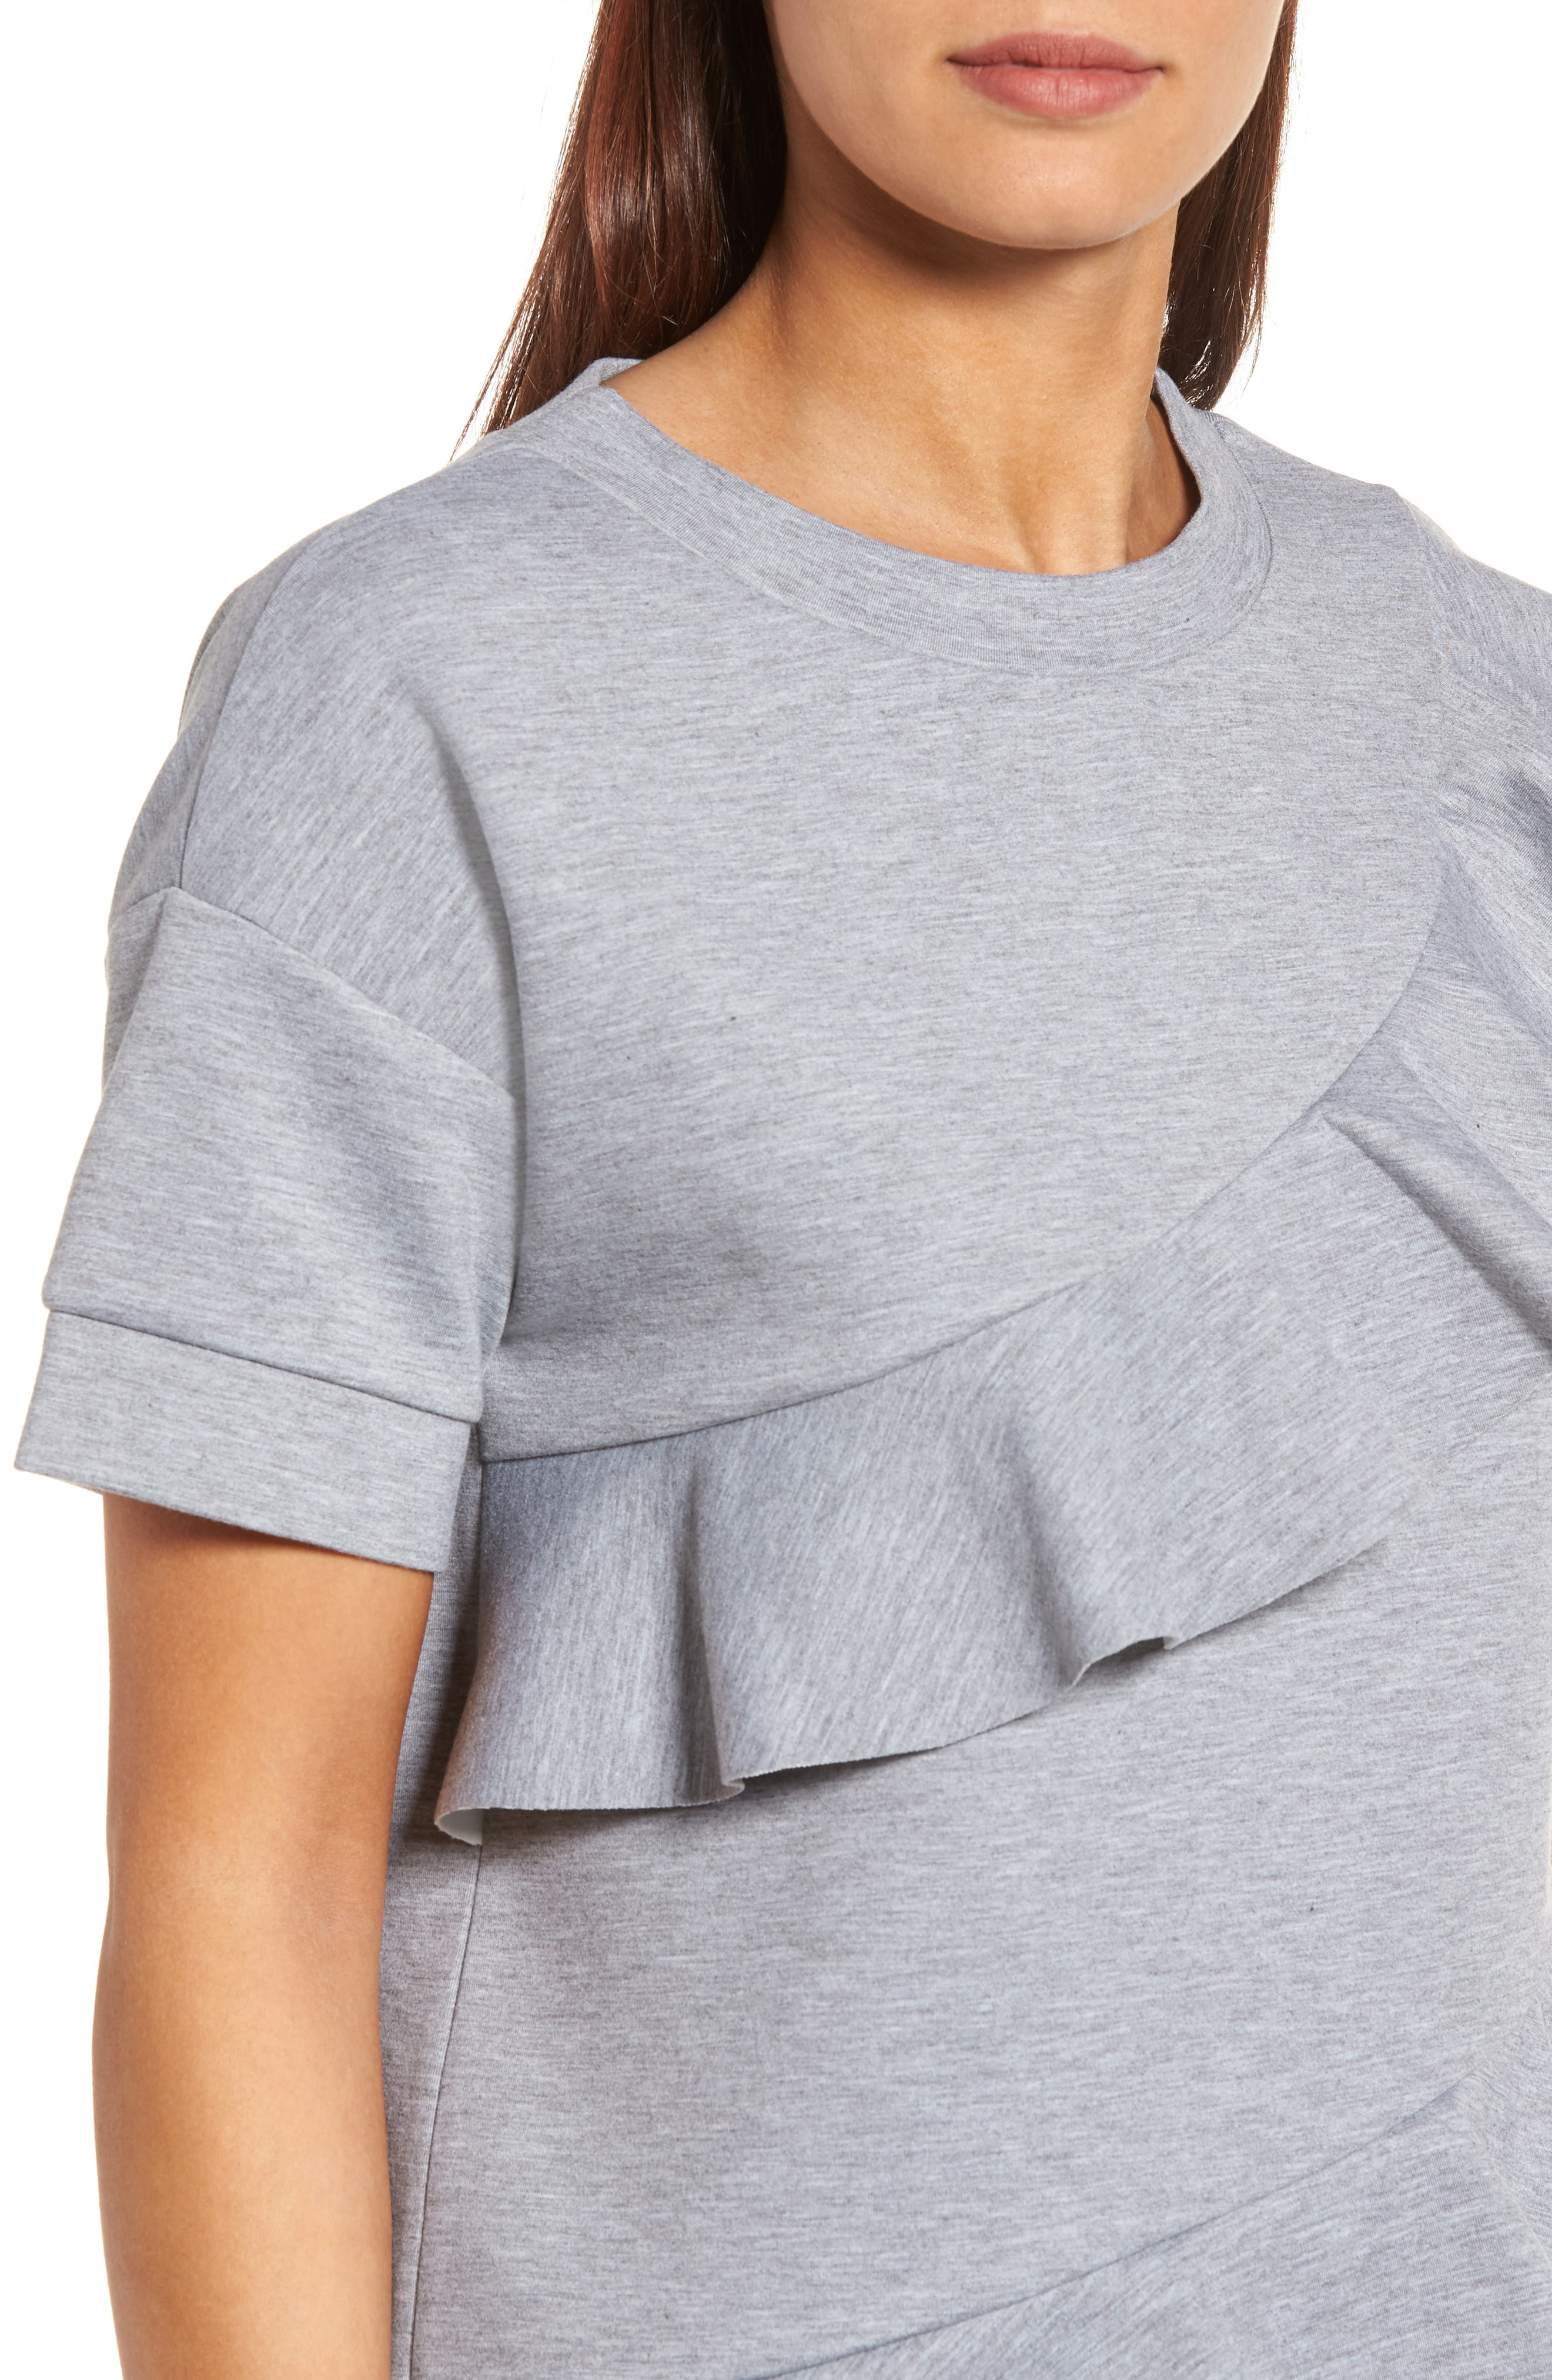 Alternate Image 4  - Halogen® Ruffle Front Neopene Sweatshirt (Regular & Petite)